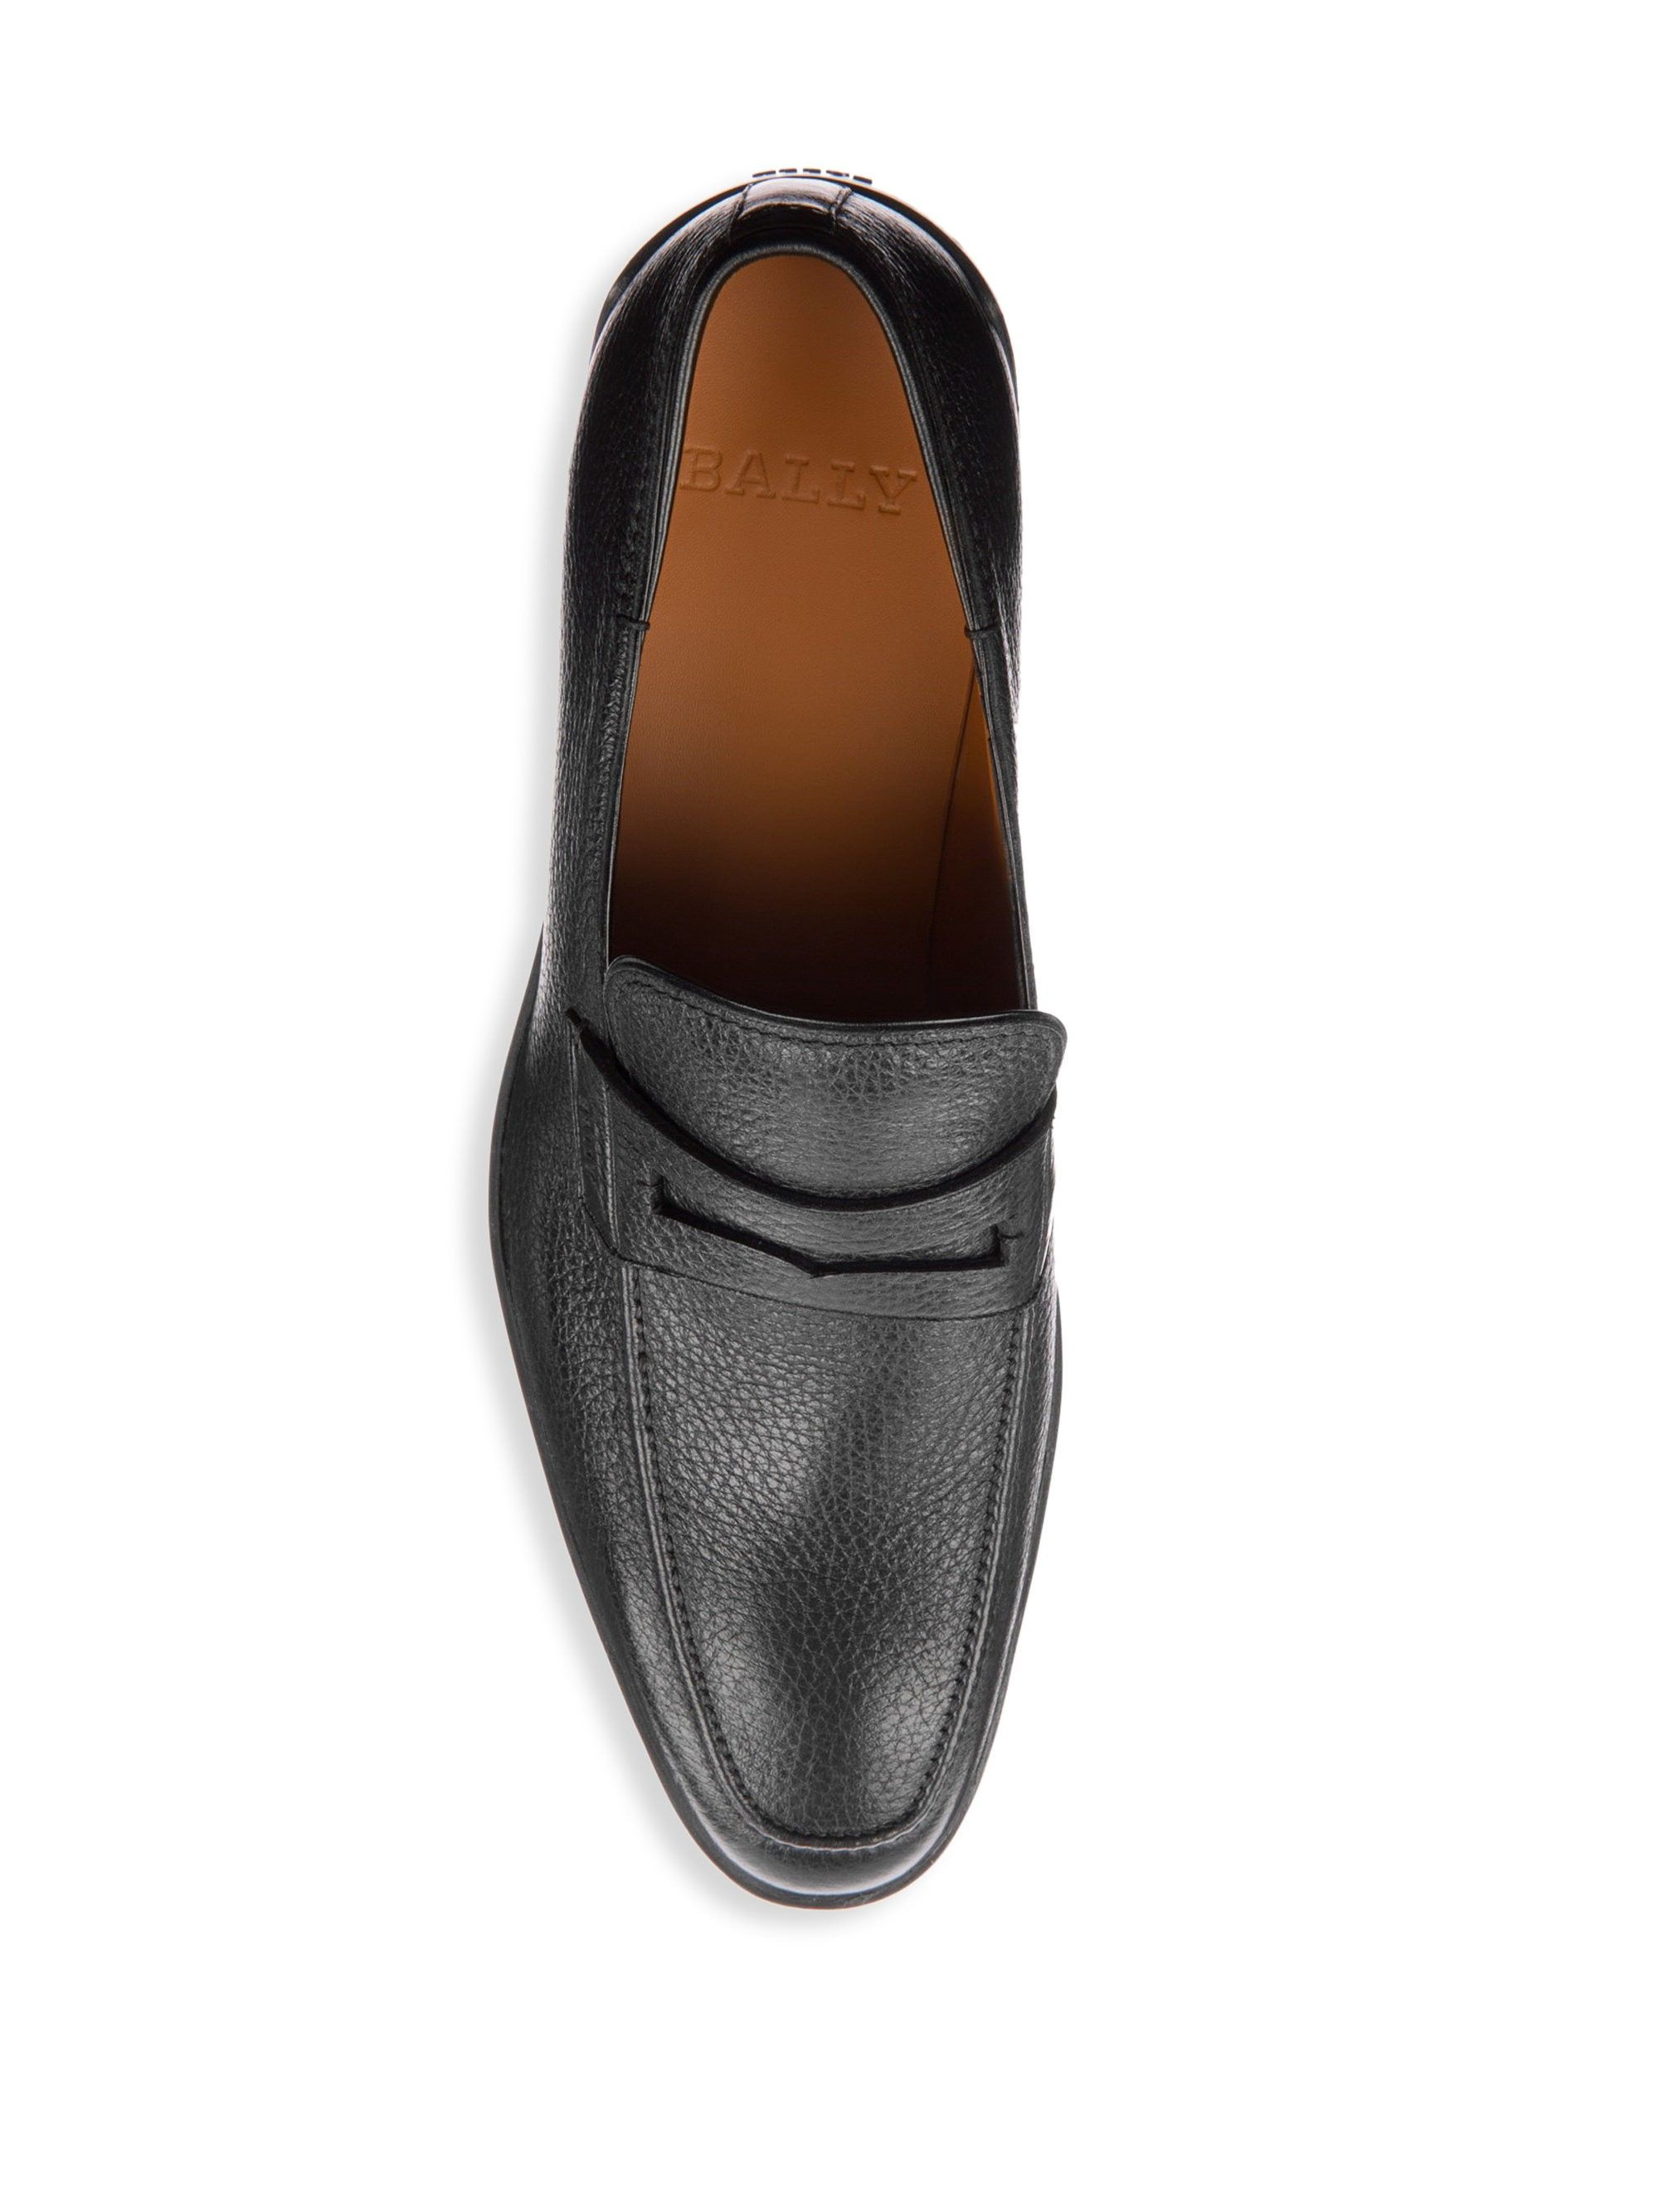 ffad82dc280 Bally Relon Leather Penny Loafers - Black 6.5 in 2018